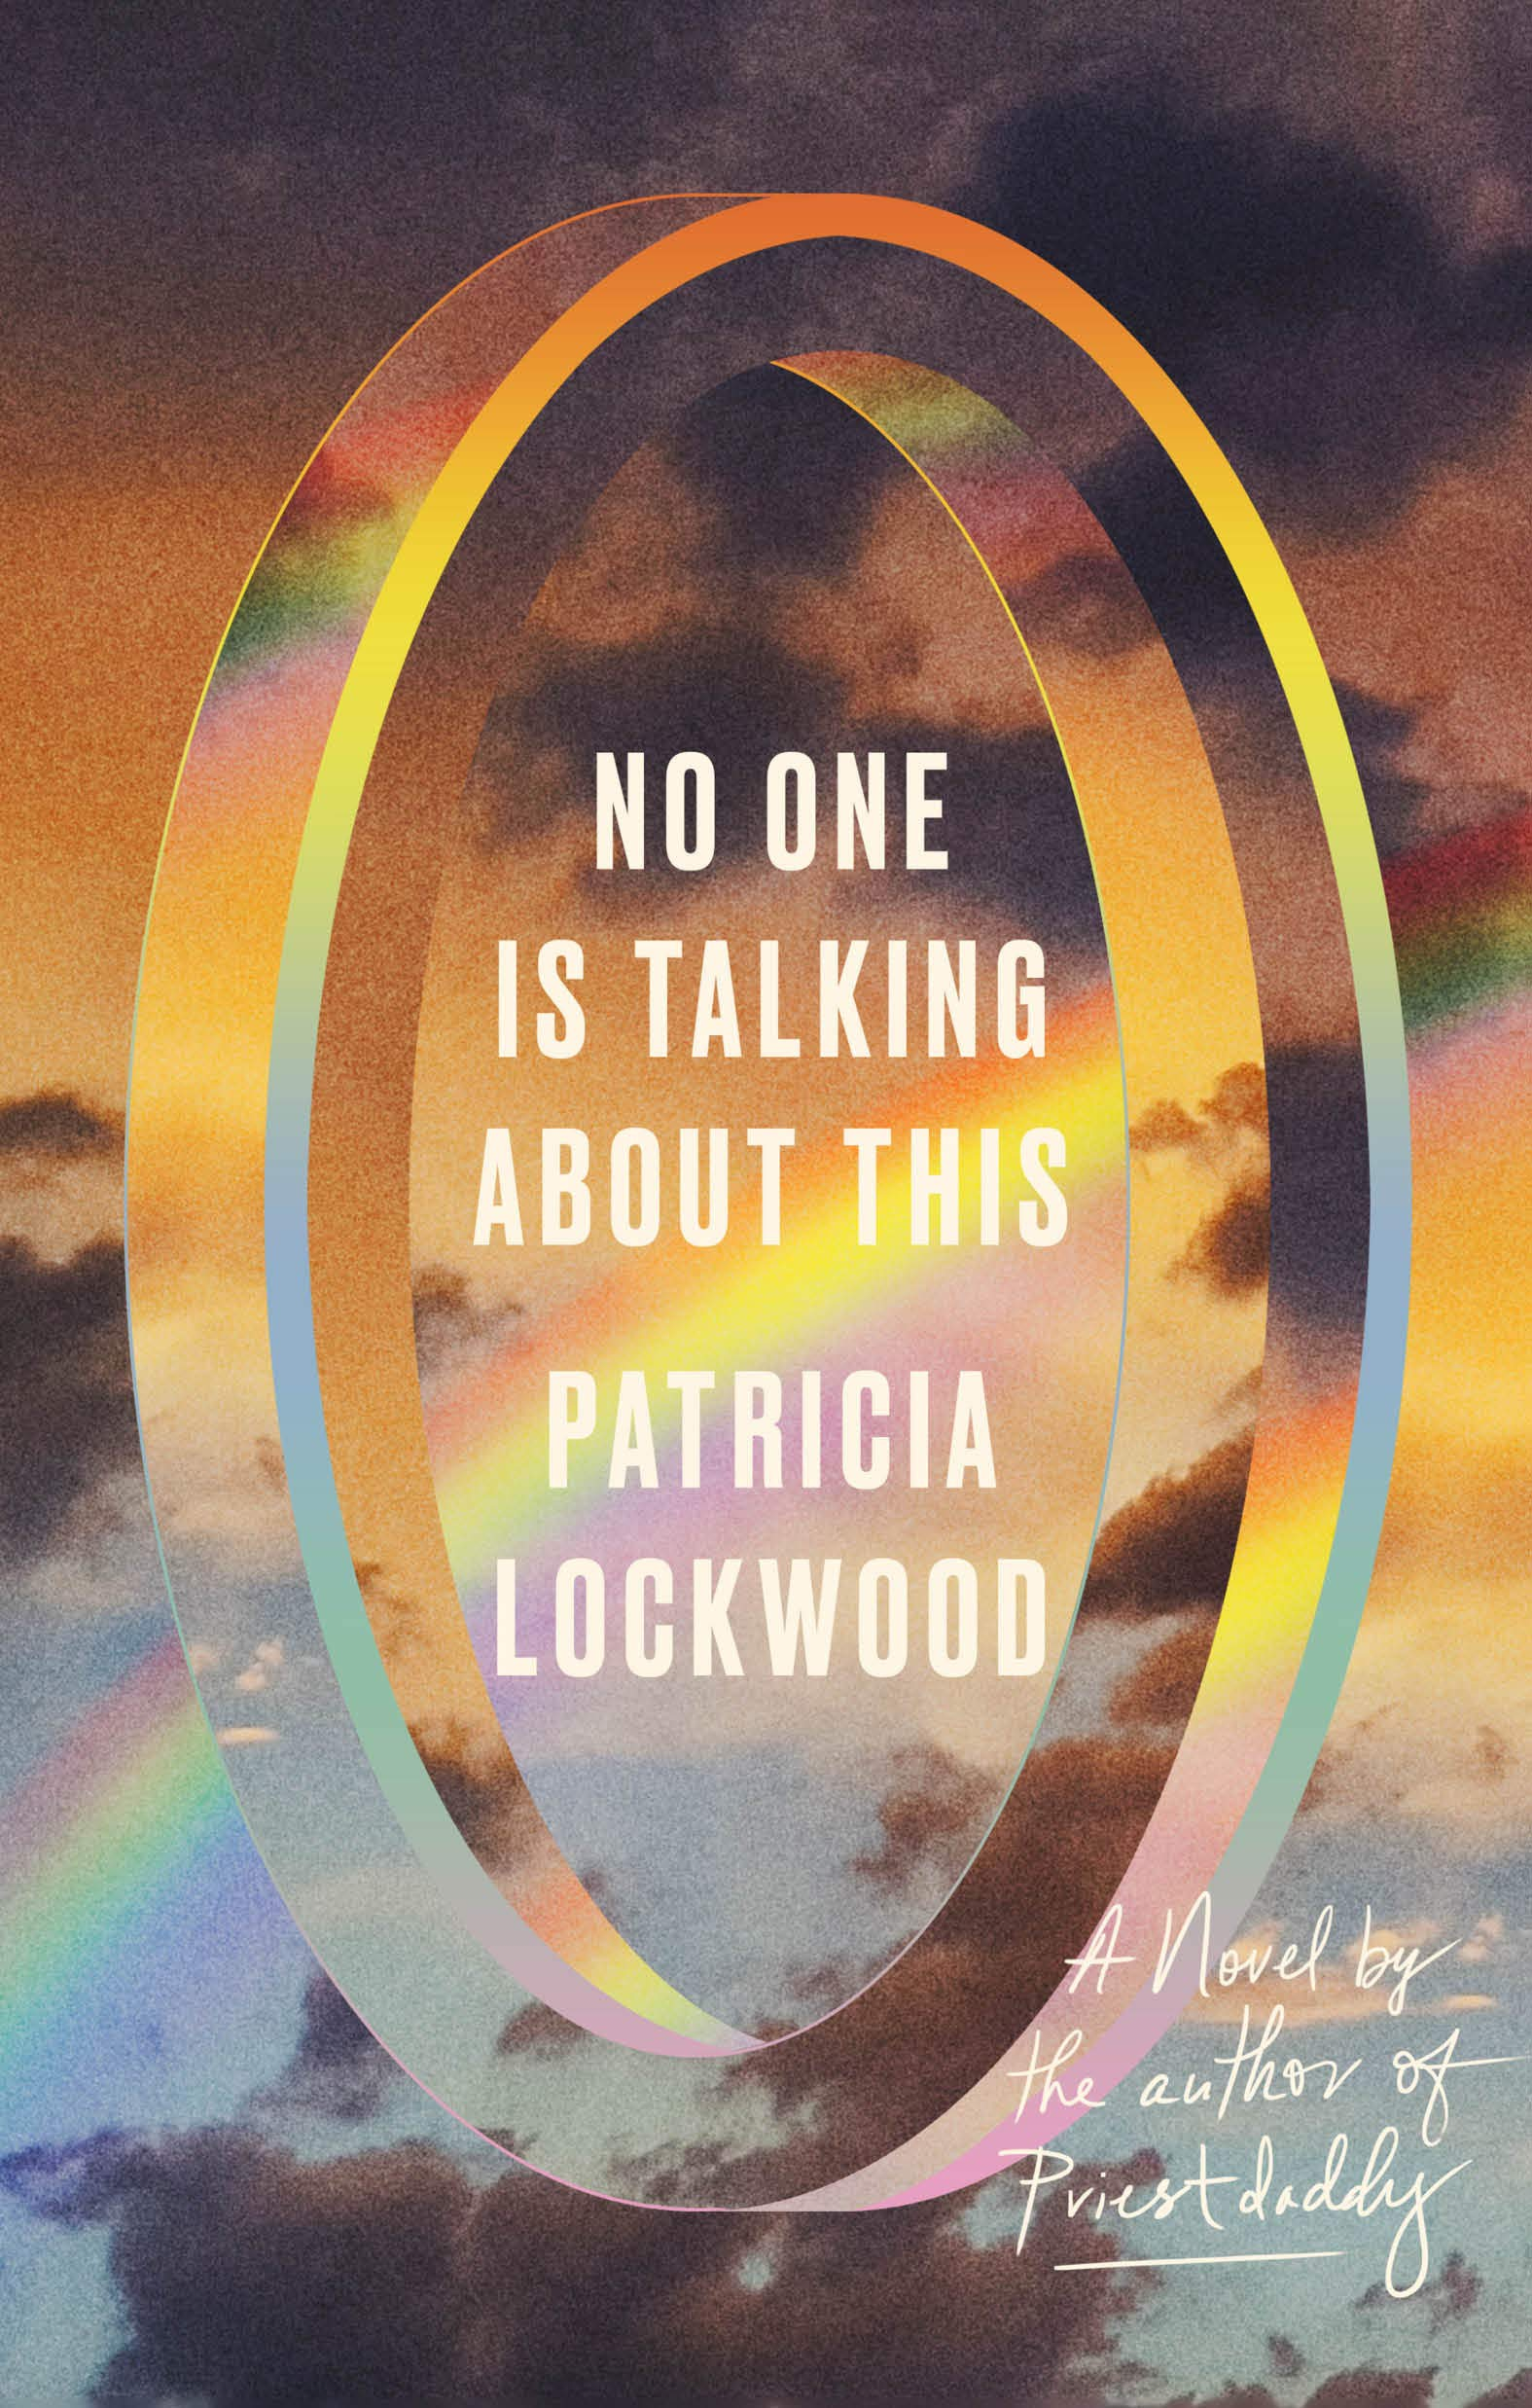 No One Is Talking About This (hardcover, 2021, Riverhead Books)